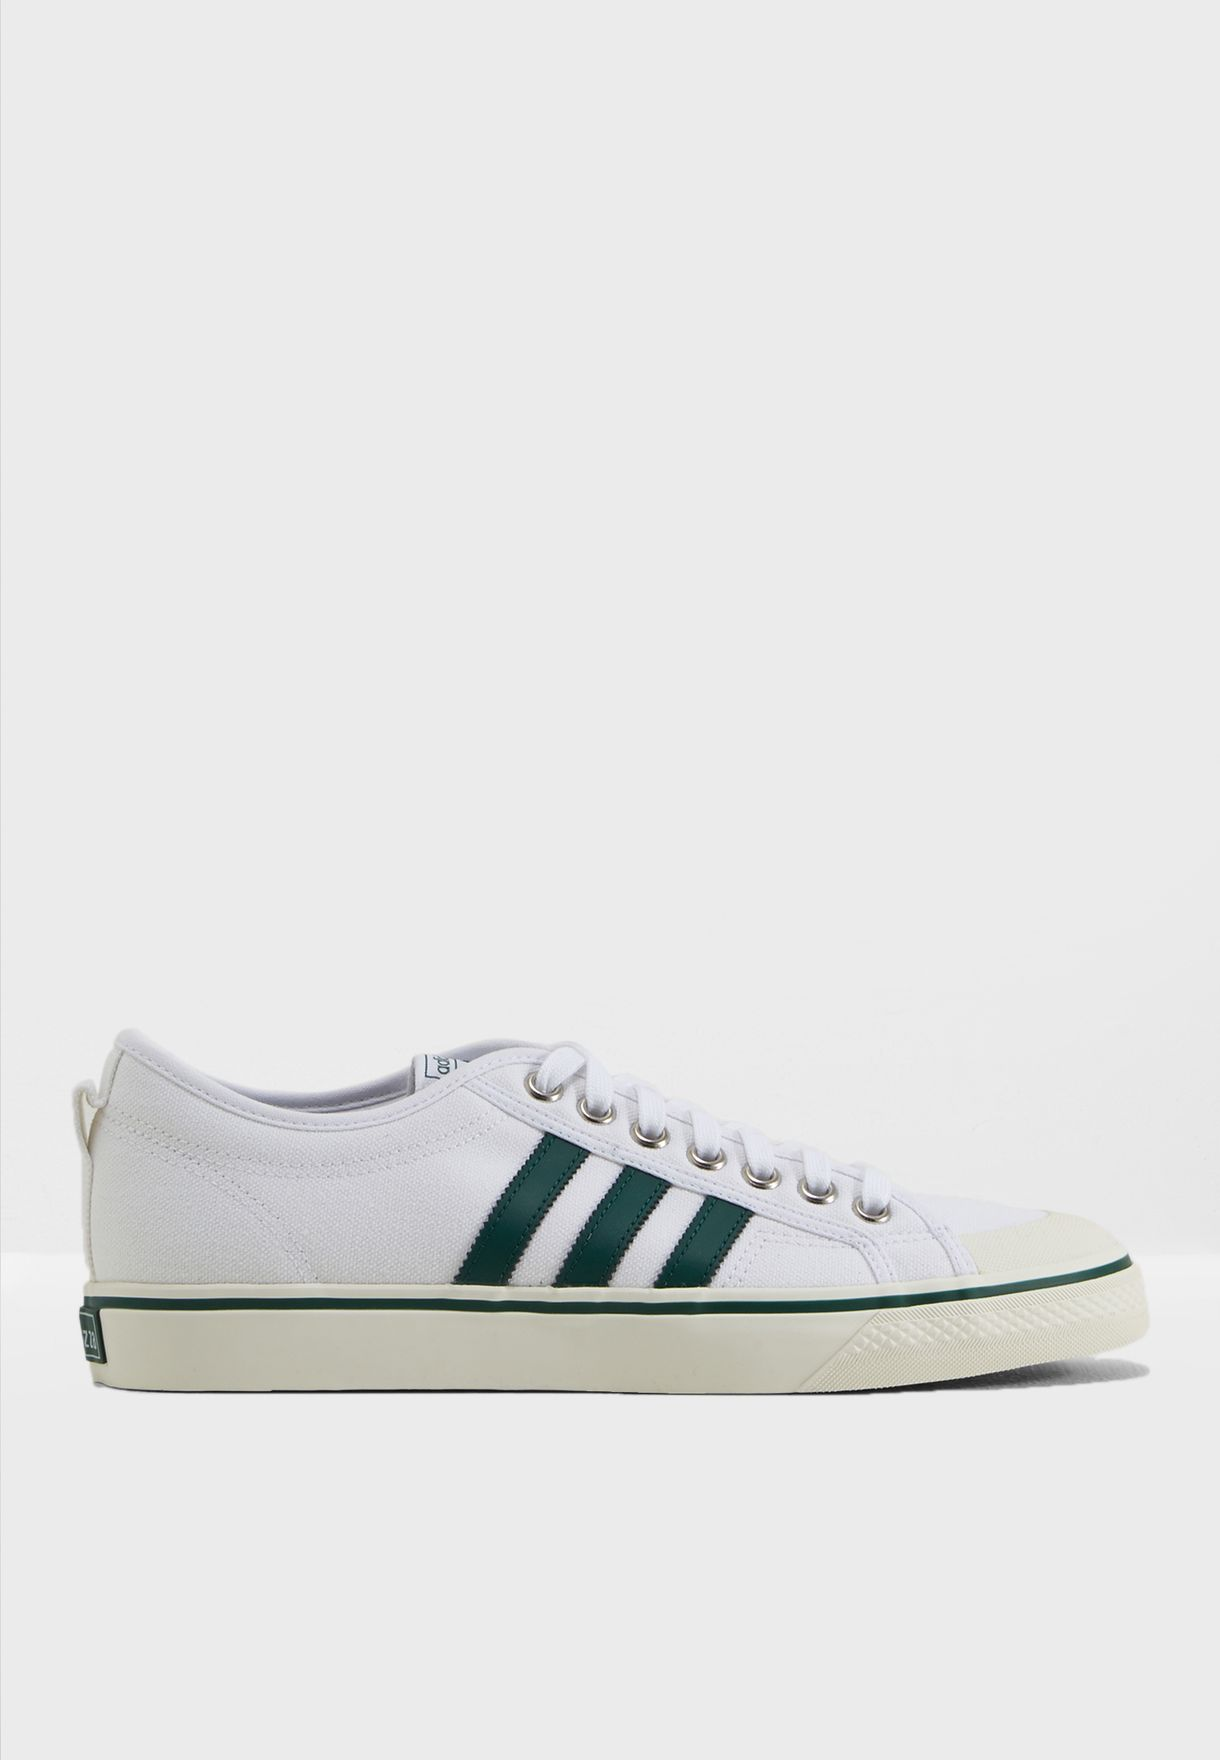 9d2775cb002 Shop adidas Originals white Nizza CQ2327 for Men in UAE - AD478SH52IBR